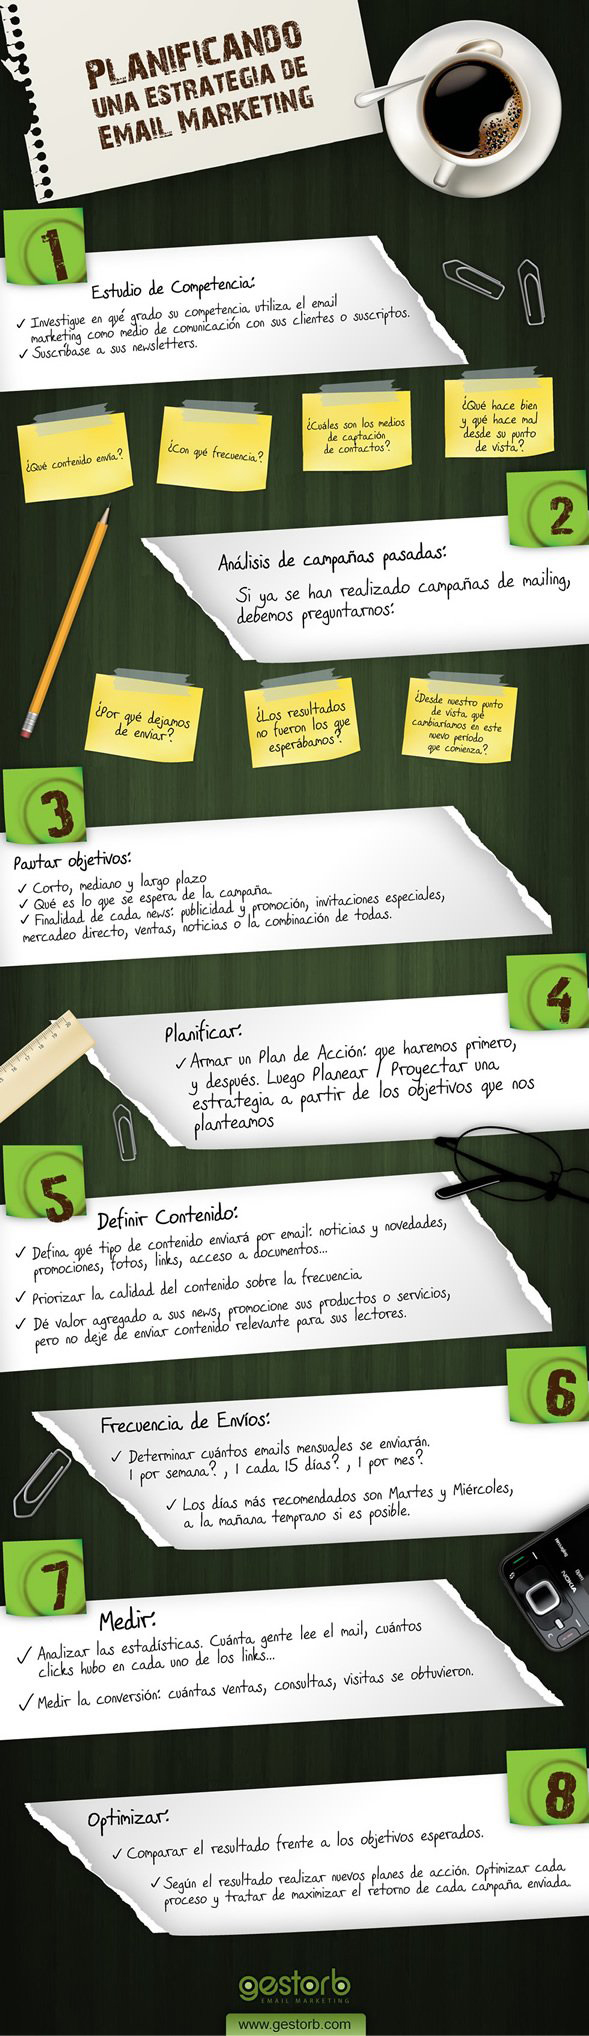 hacer-email-marketing